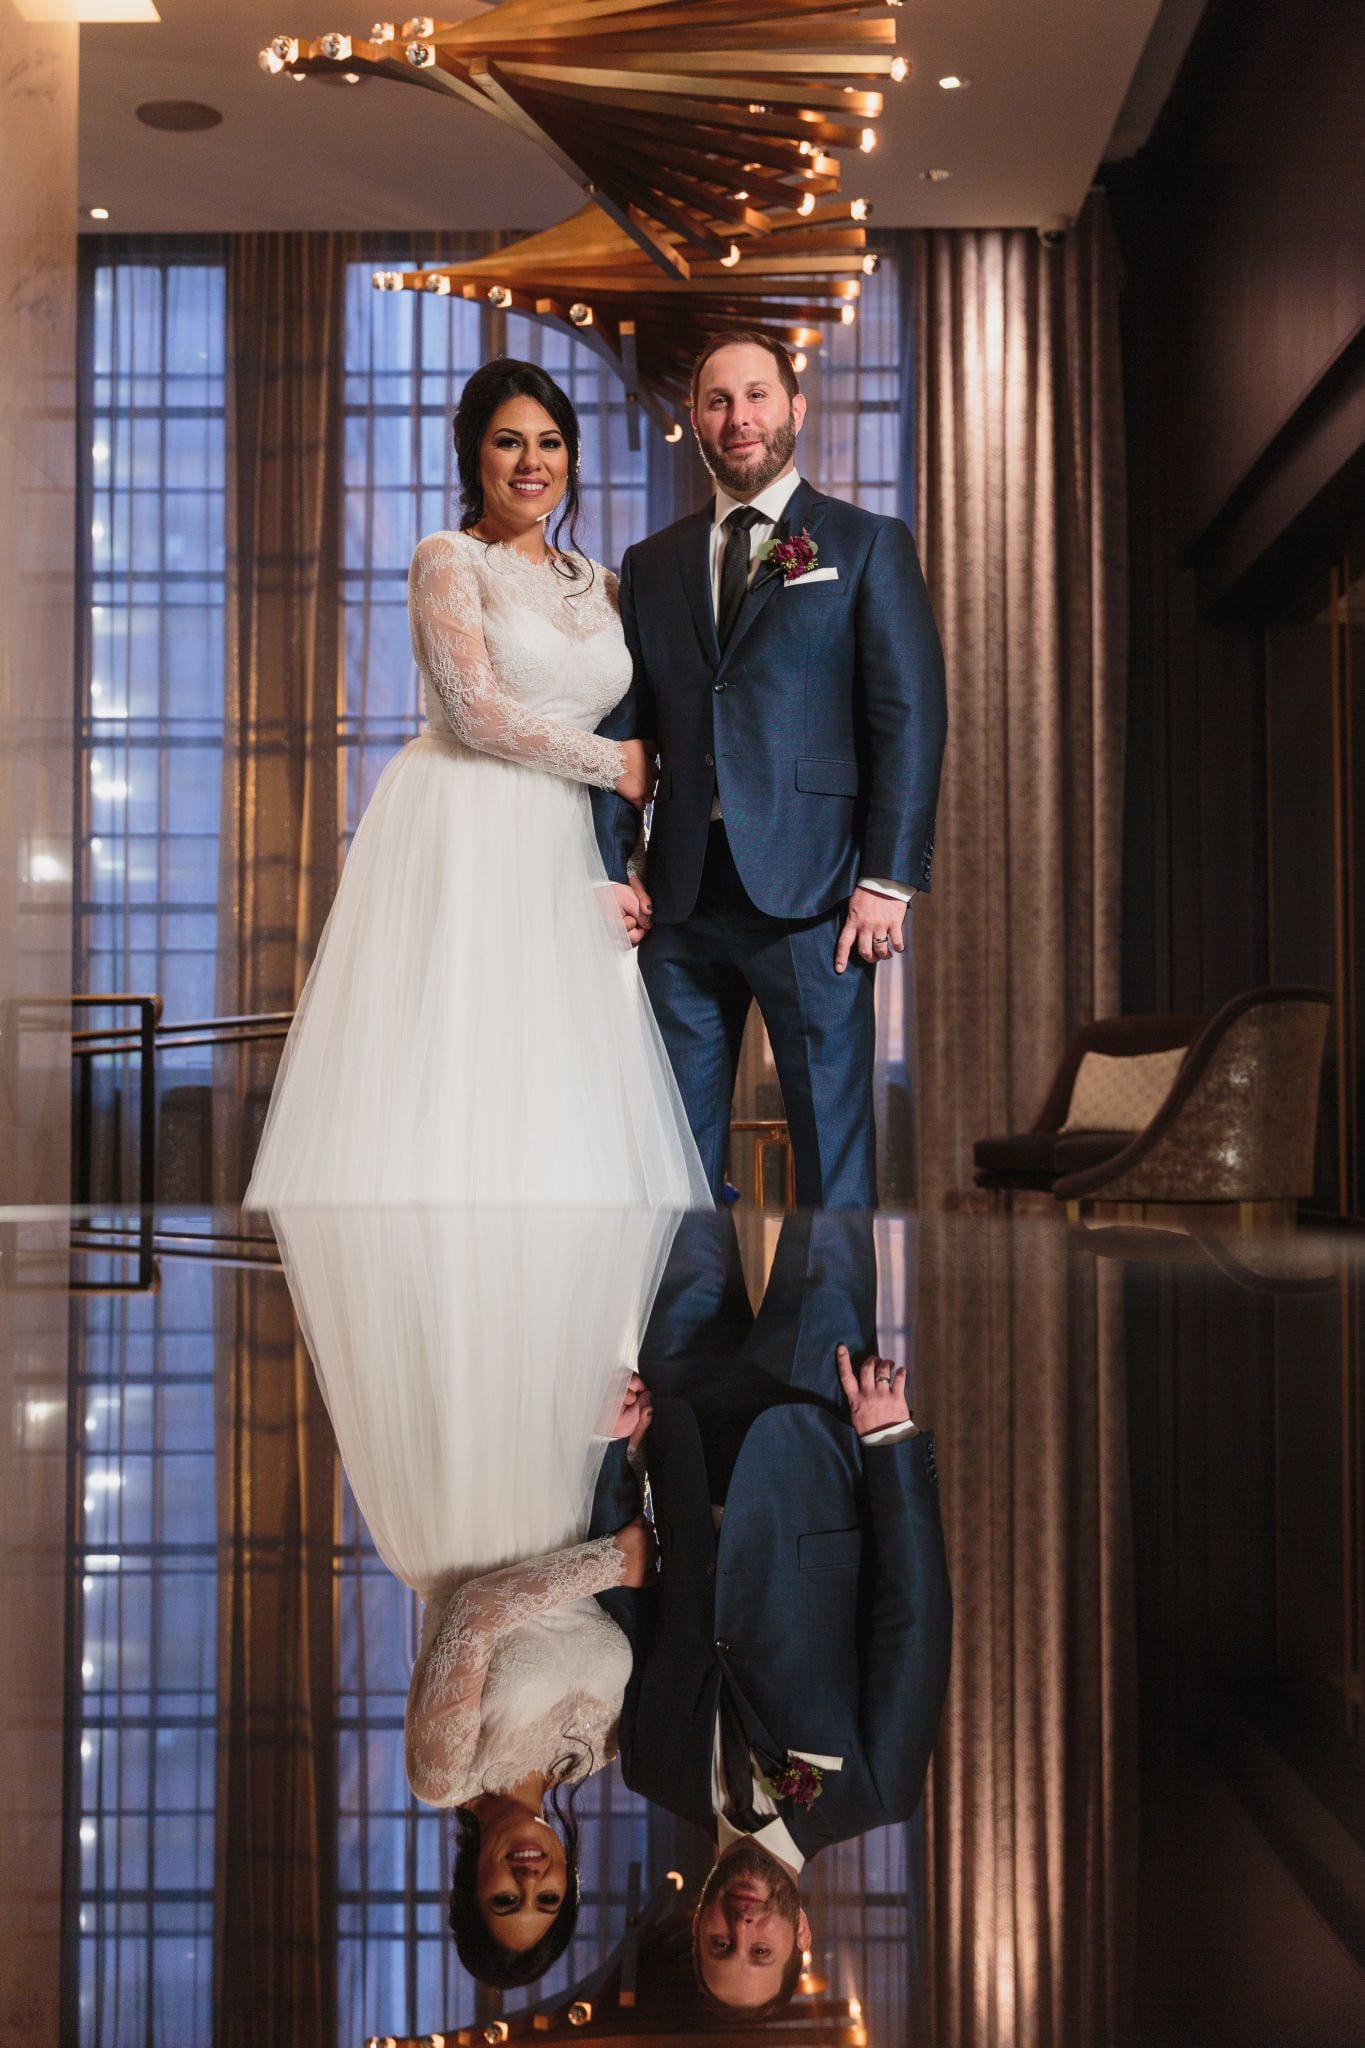 Kimpton Hotel Allegro Wedding - Wes Craft Photography